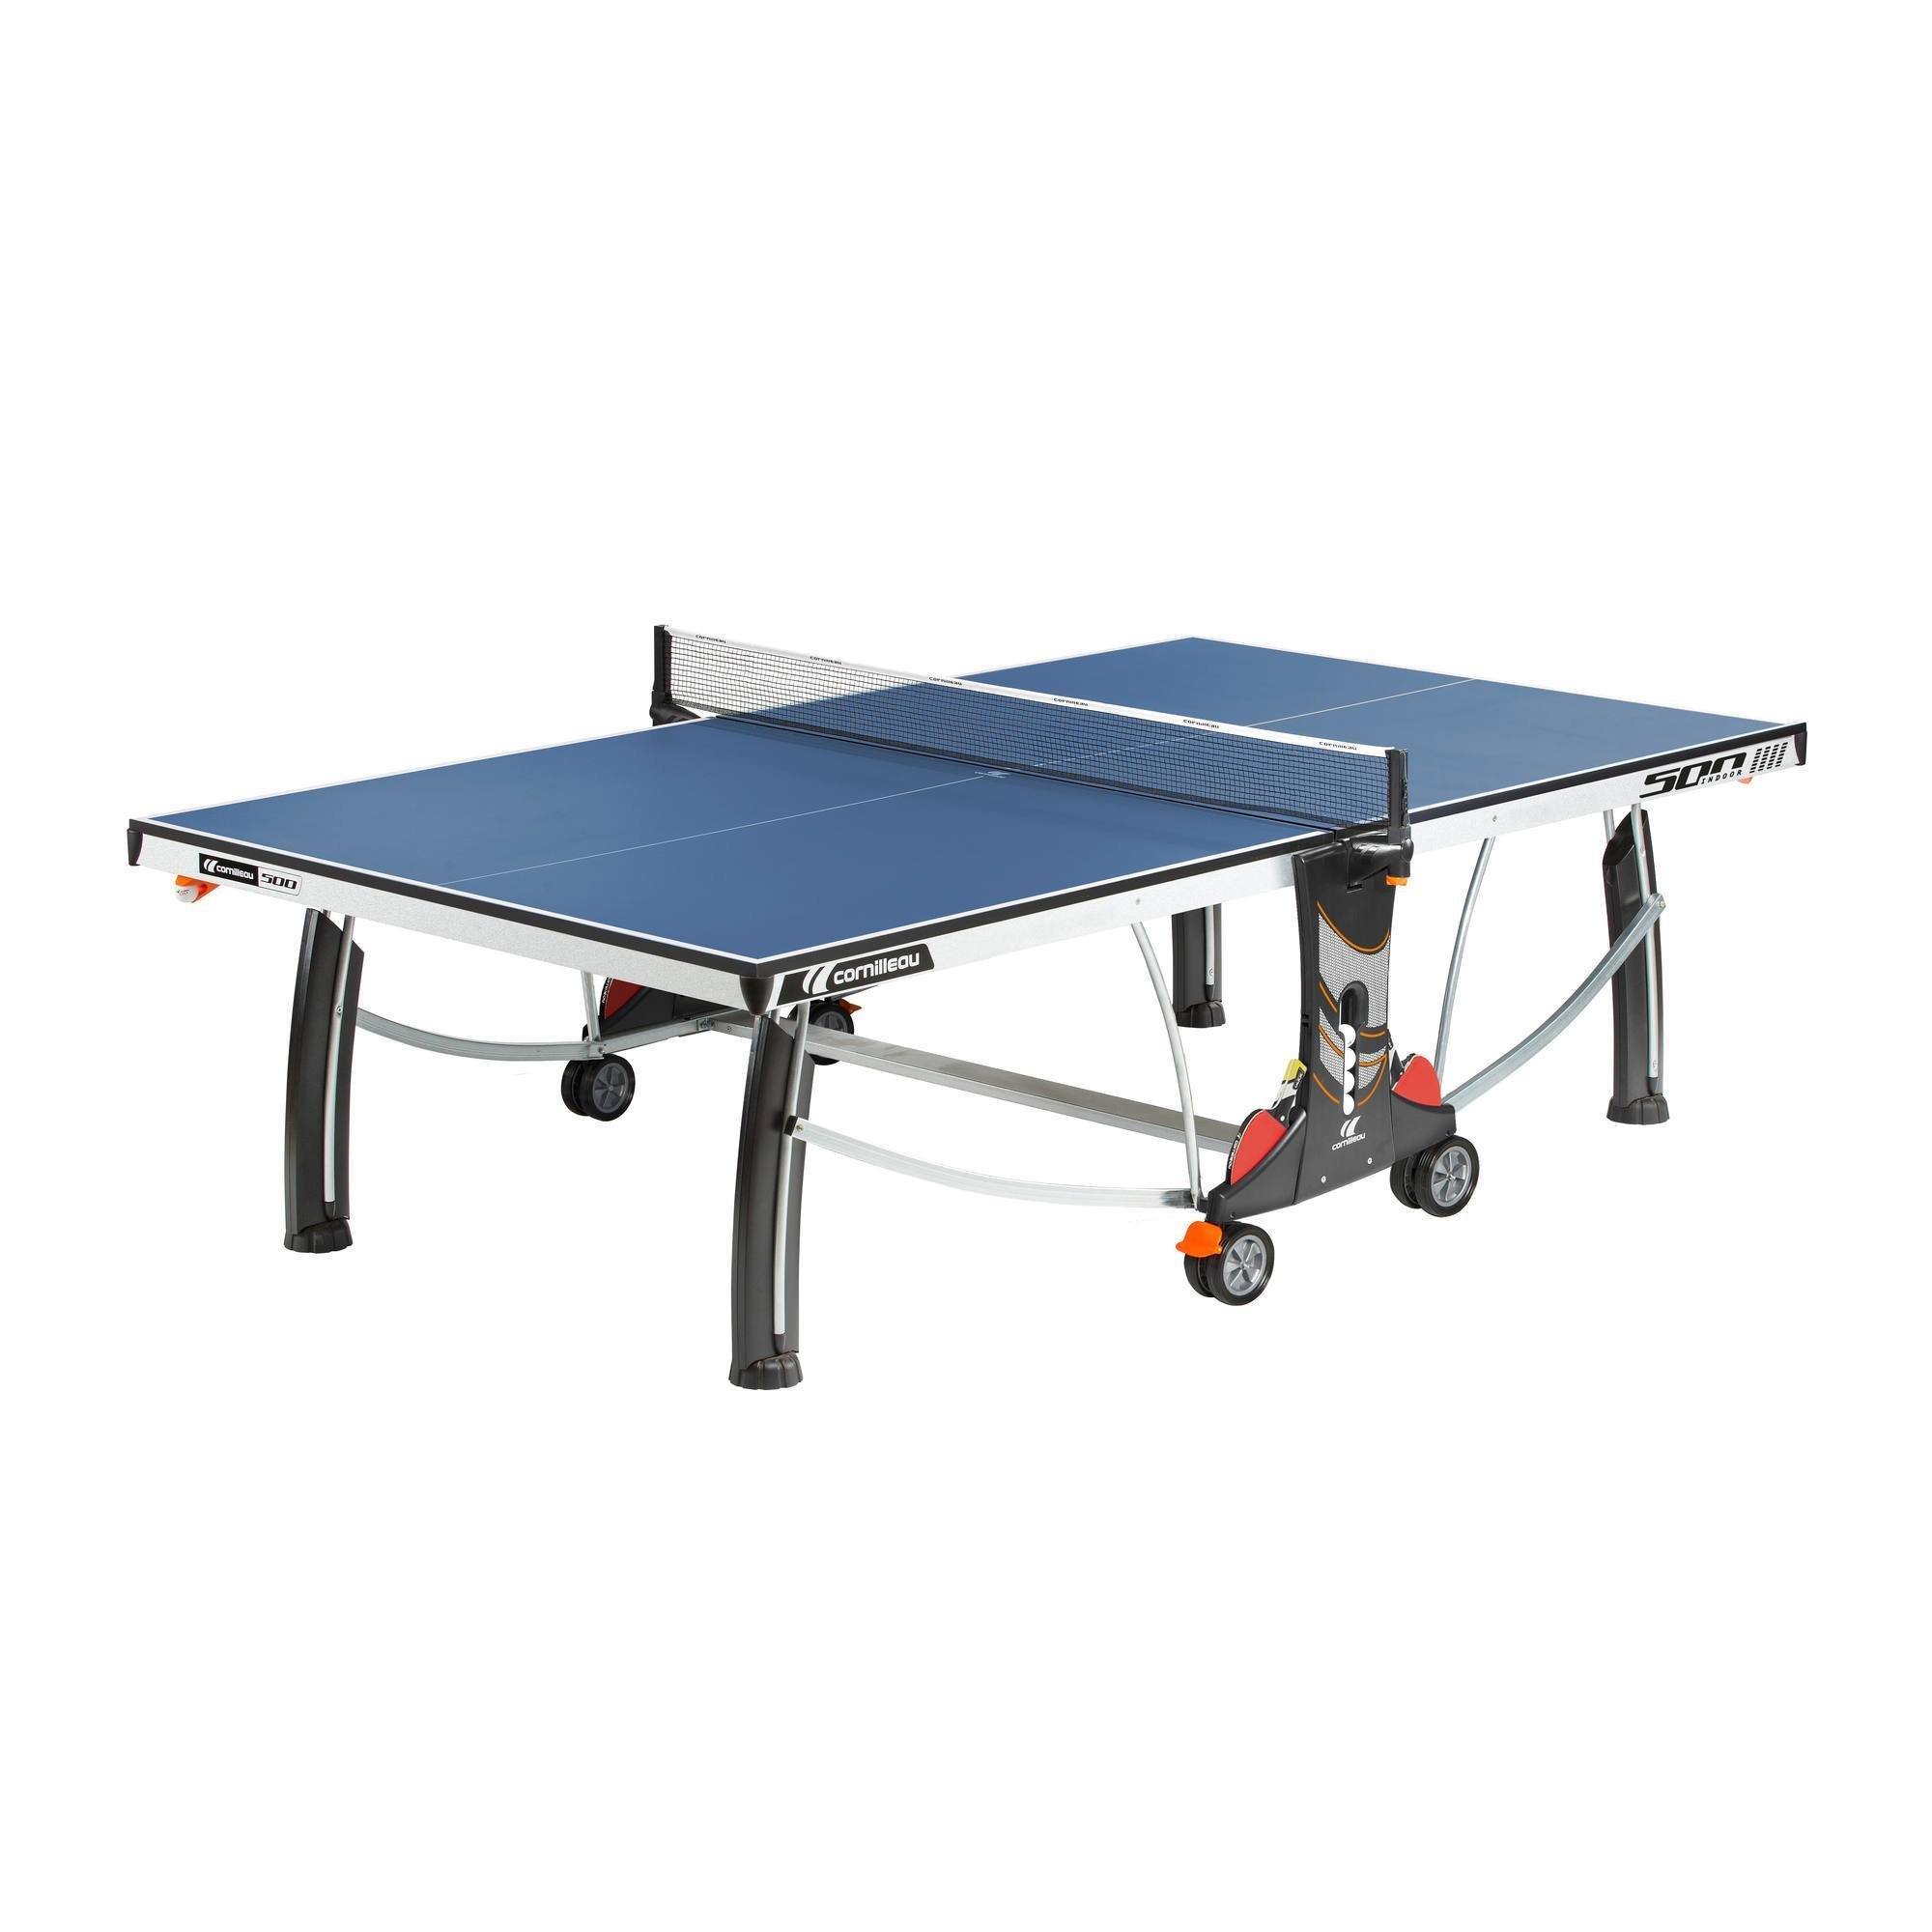 TABLE DE TENNIS DE TABLE INTERIEUR 500 INDOOR